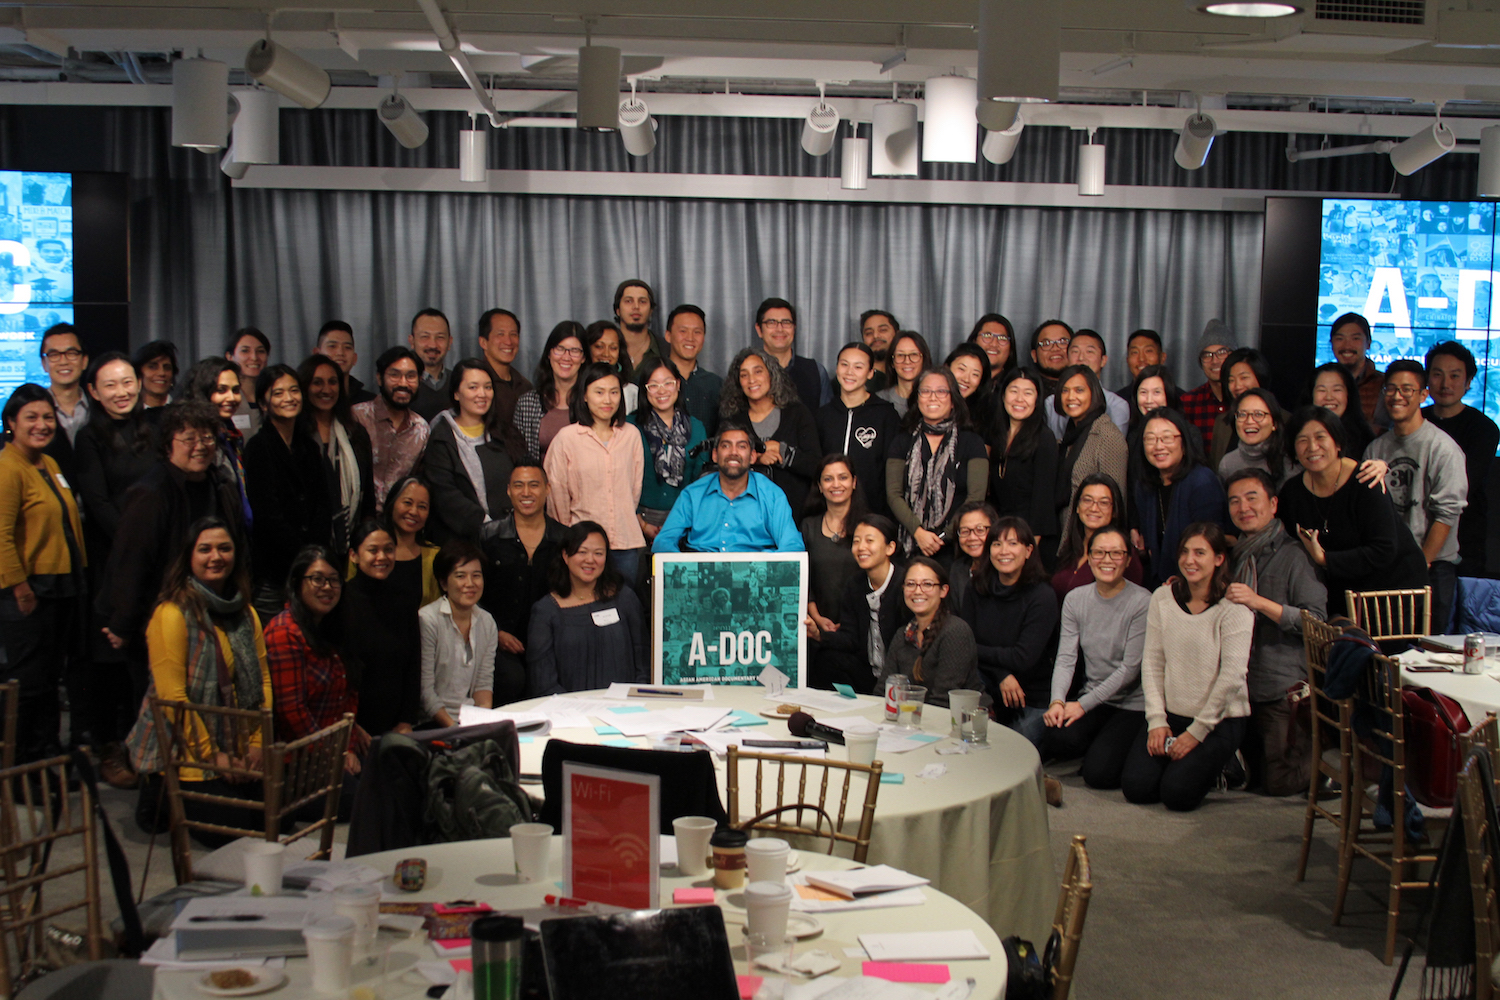 A-Doc members at the 2017 A-Doc working meeting hosted at the Ford Foundation. Photo courtesy of A-Doc.